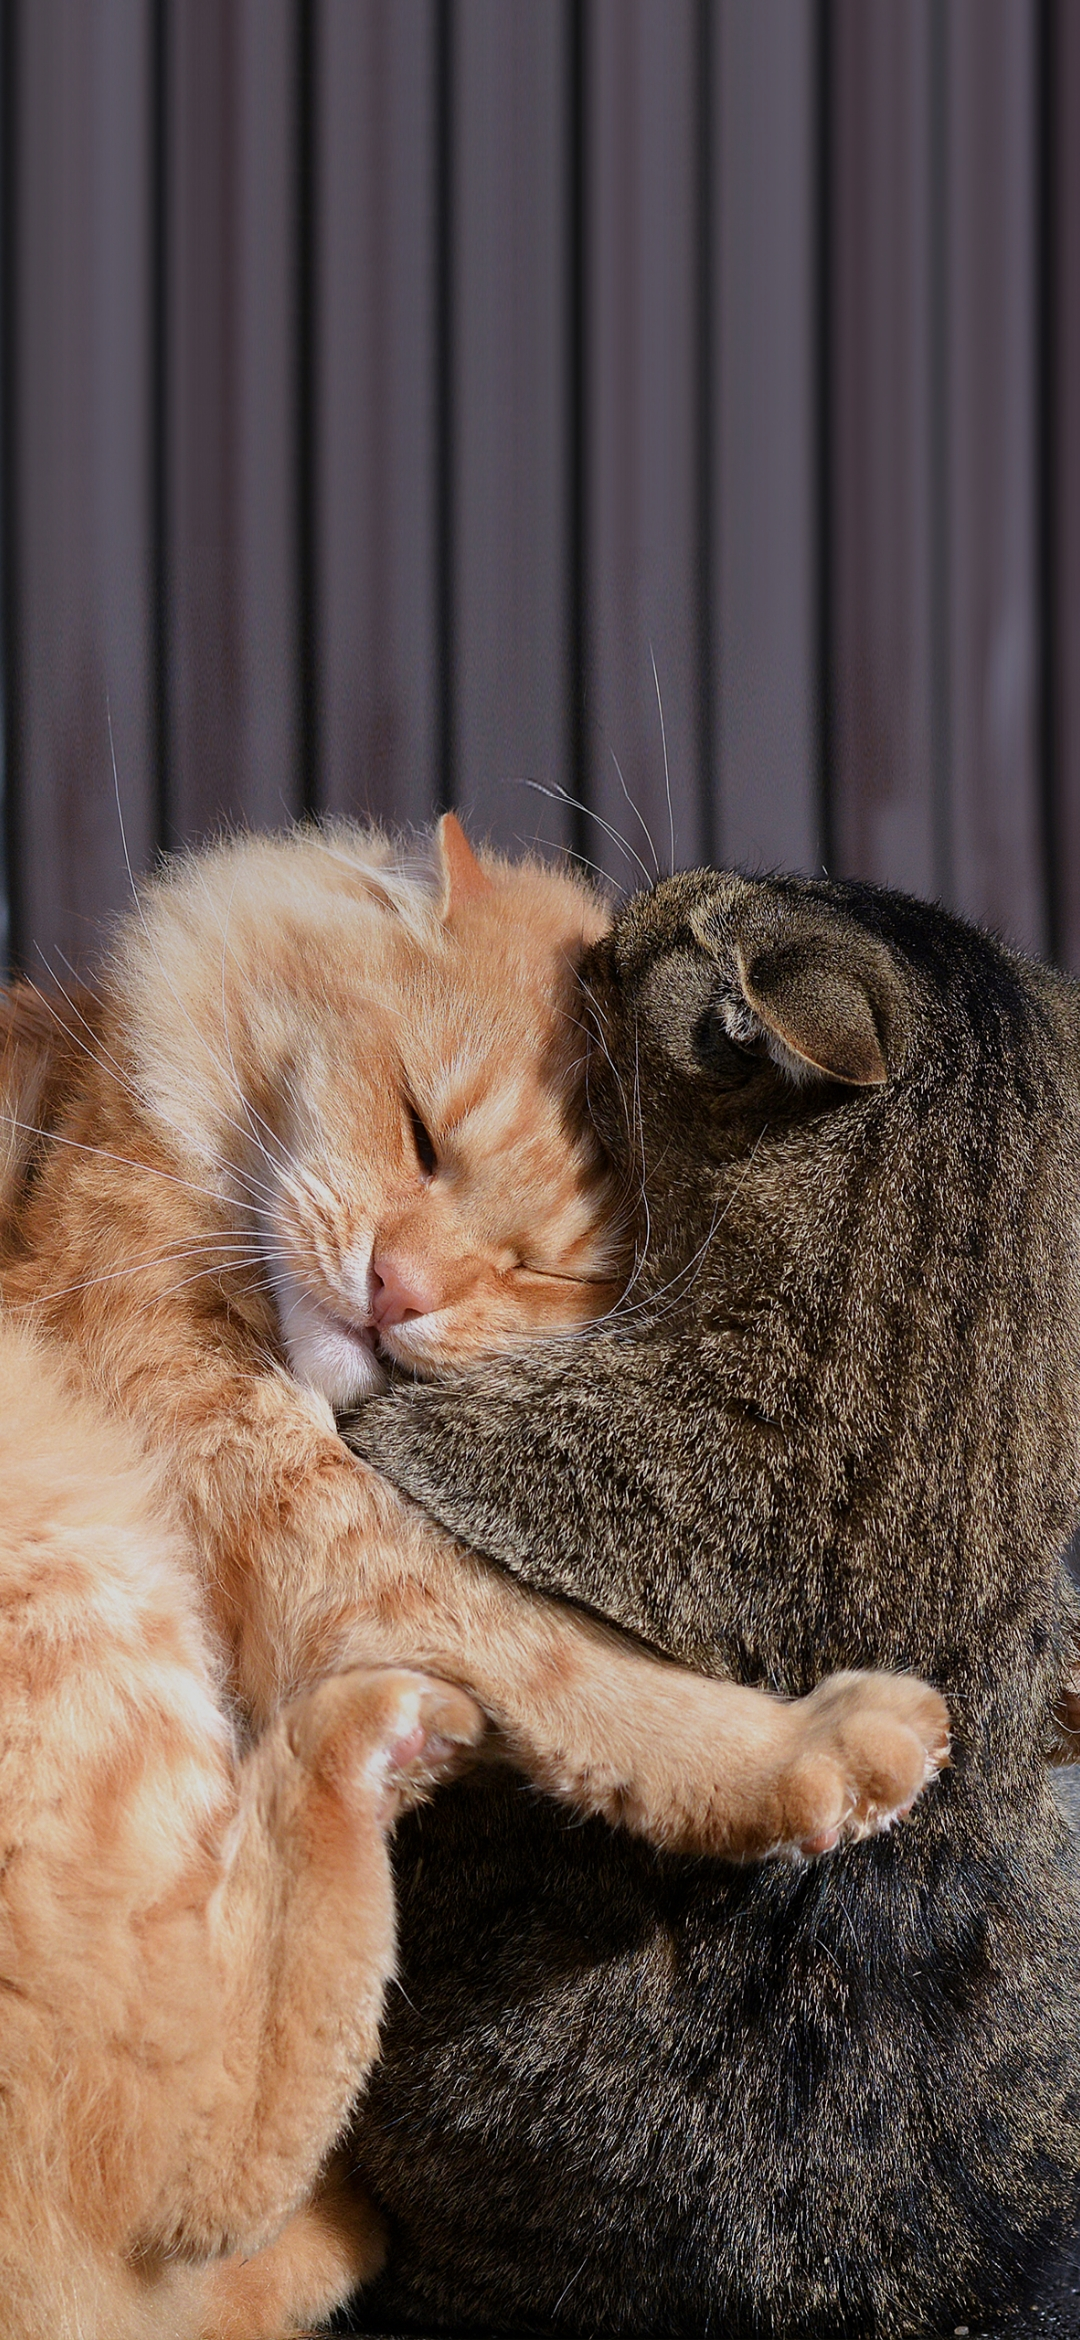 A cat and otter sleeping together